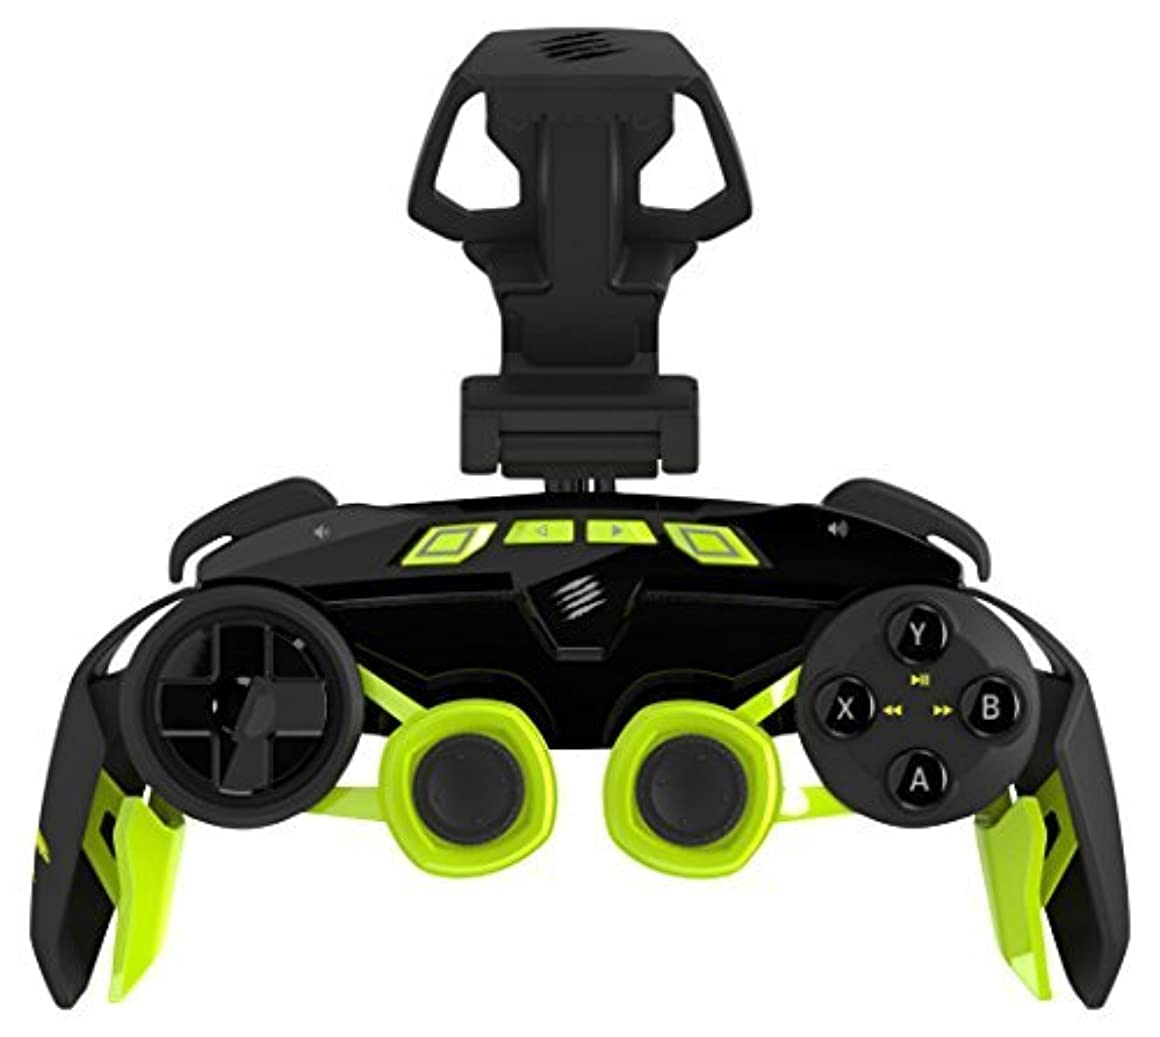 軽く入力つま先Mad Catz L.Y.N.X.3 Mobile Wireless Controller with Bluetooth Technology for Android Smartphones and Tablets and PC by Mad Catz [並行輸入品]